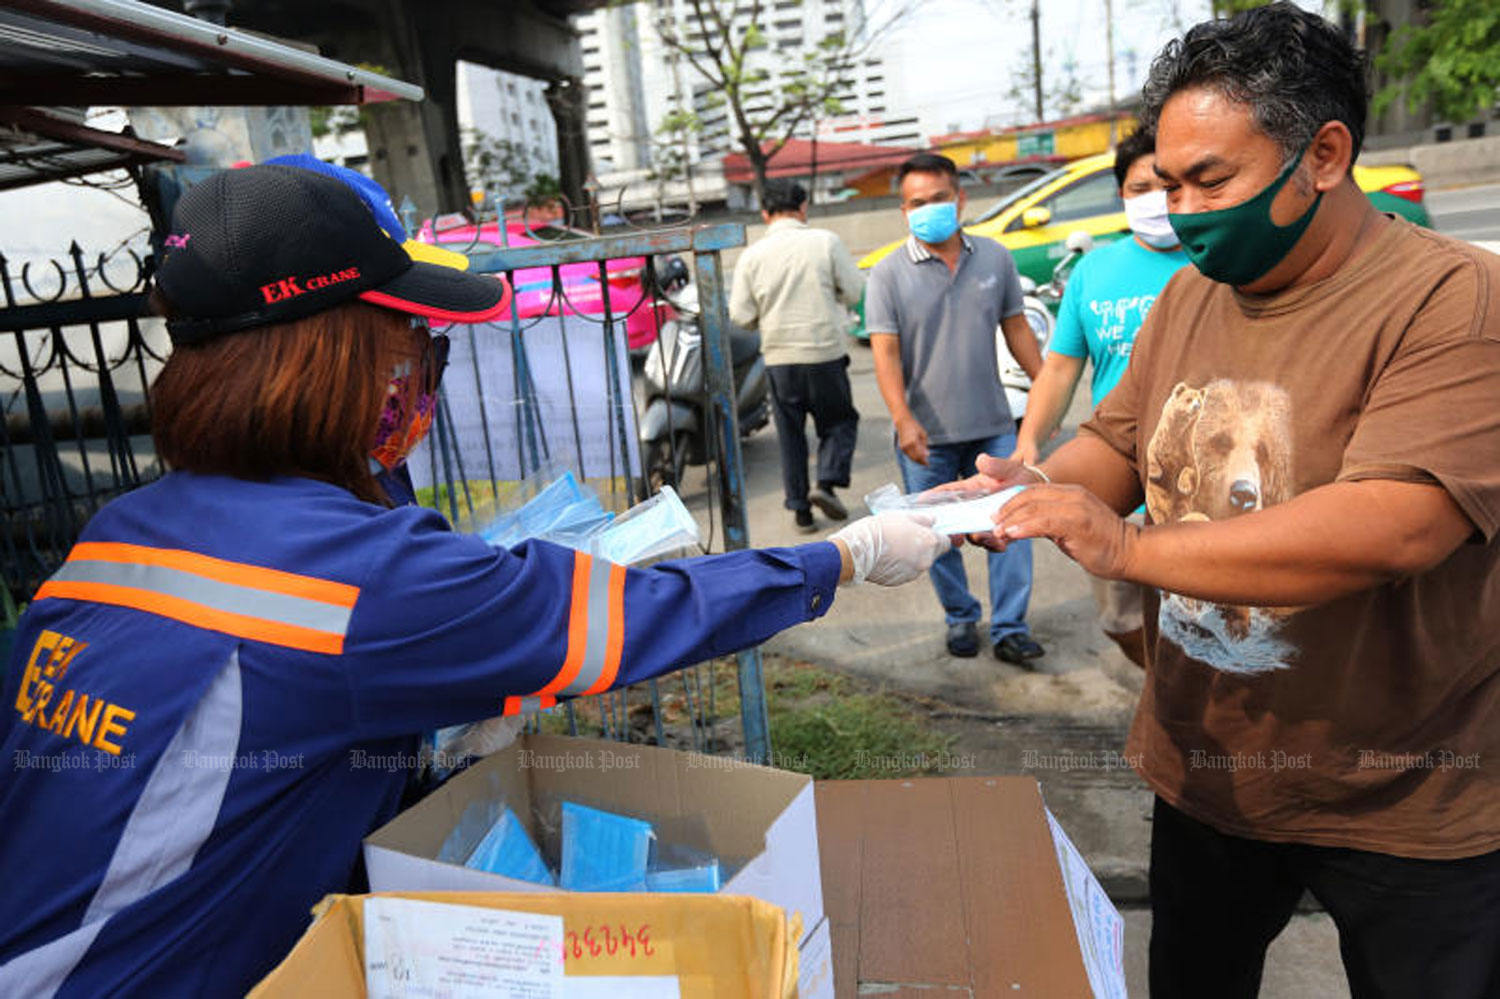 Staff of the Ek Crane logistics firm hand out free face masks to people on Bang Na-Trat Road in Bangkok on Tuesday. (Photo by Wichan Charoenkiatpakul)